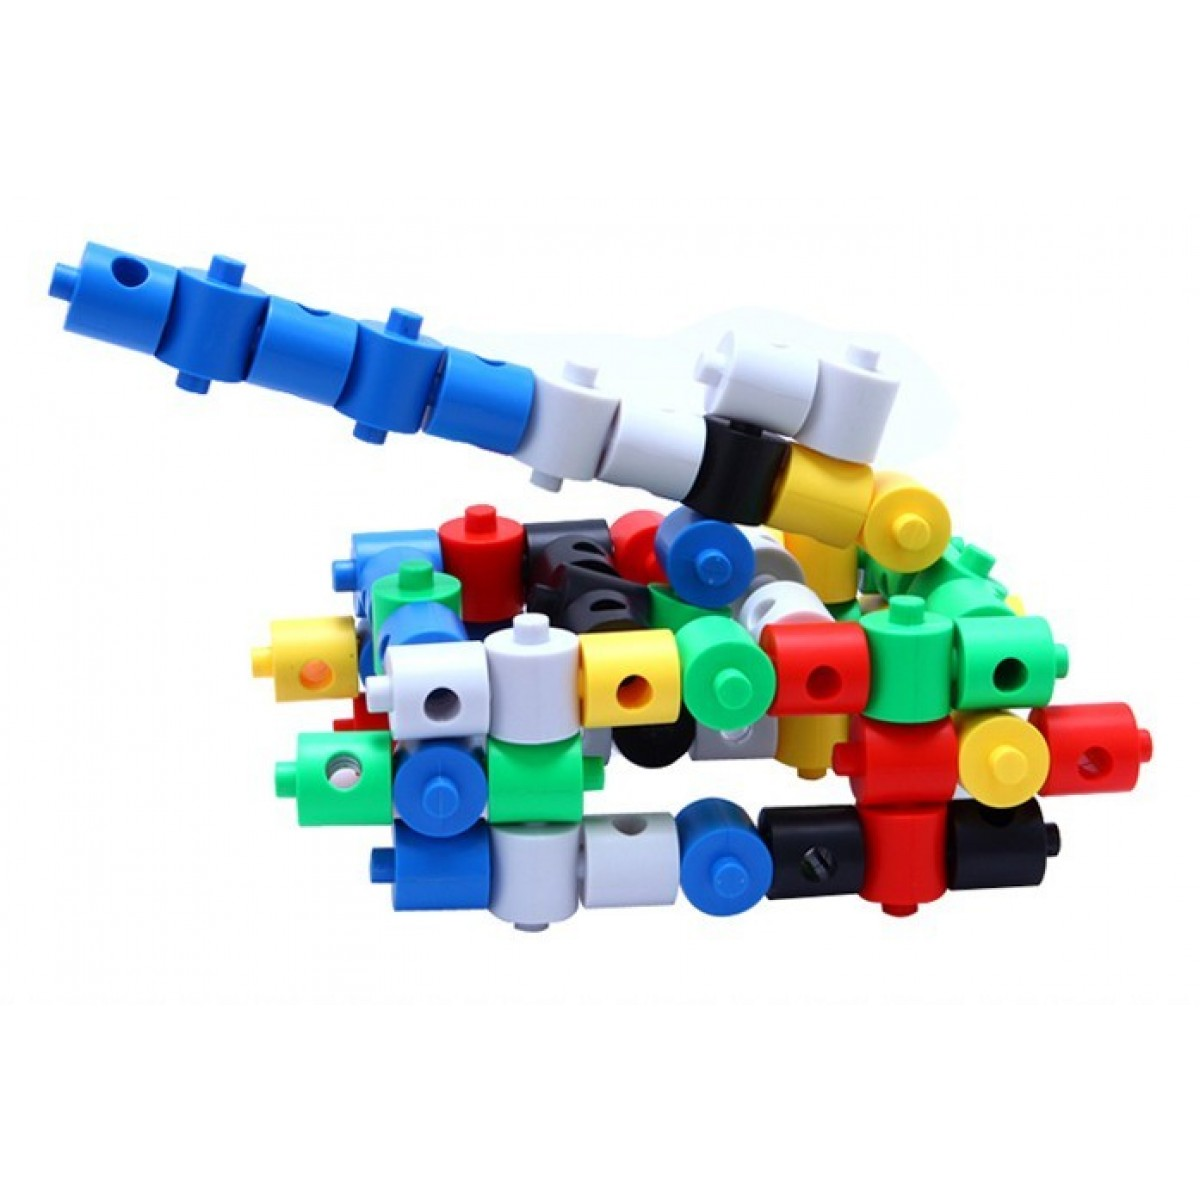 Cheap Small Cylindrical Plastic Building Blocks Toy Sale